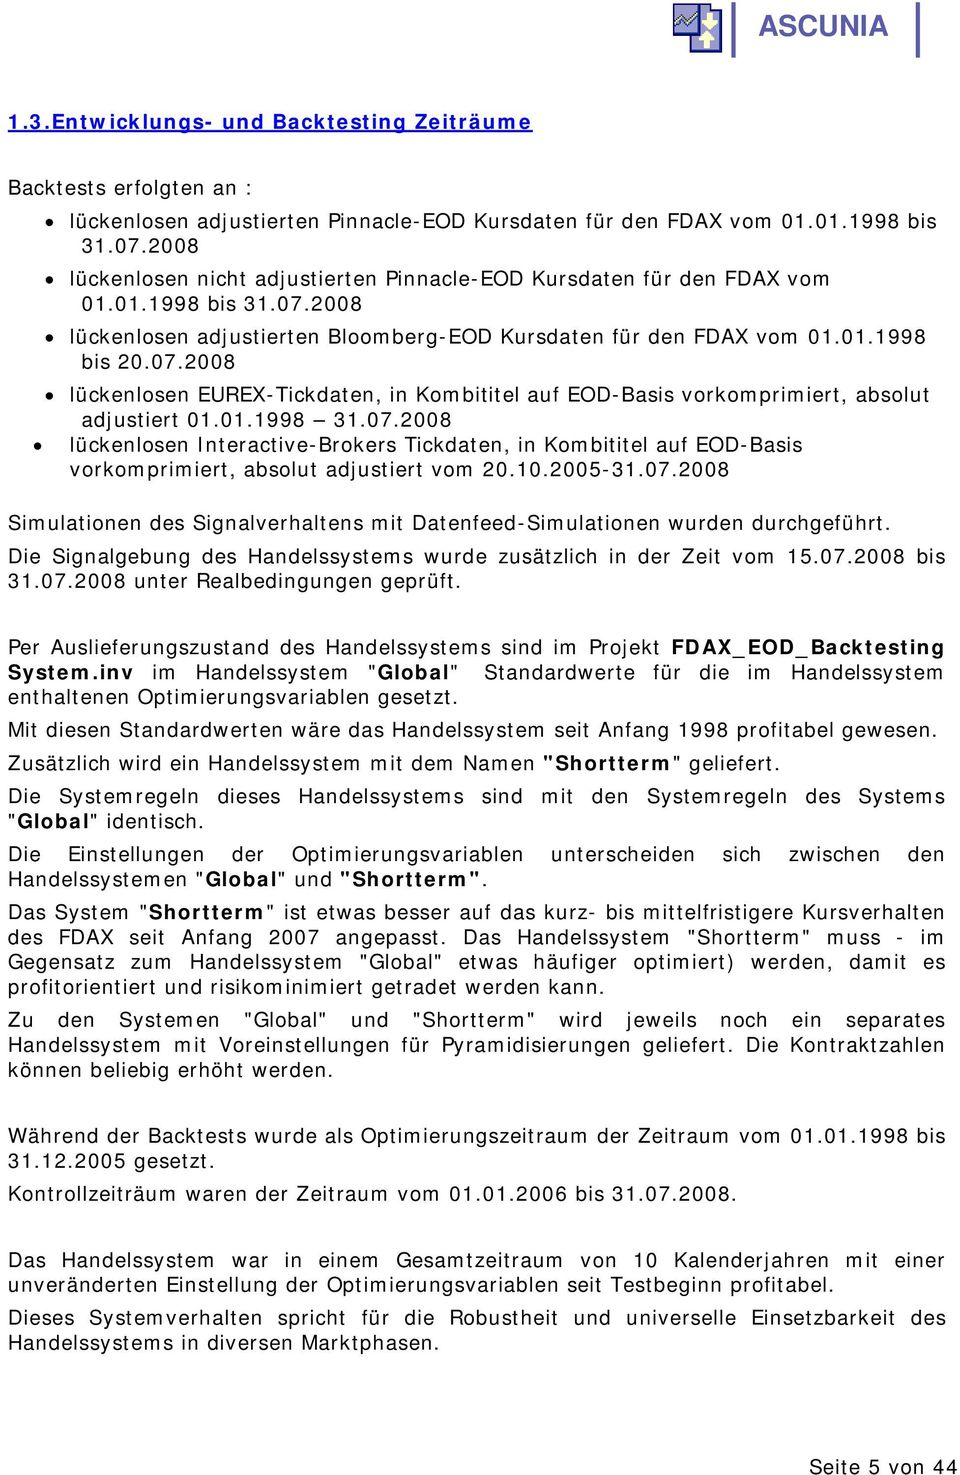 01.1998 31.07.2008 lückenlosen Interactive-Brokers Tickdaten, in Kombititel auf EOD-Basis vorkomprimiert, absolut adjustiert vom 20.10.2005-31.07.2008 Simulationen des Signalverhaltens mit Datenfeed-Simulationen wurden durchgeführt.